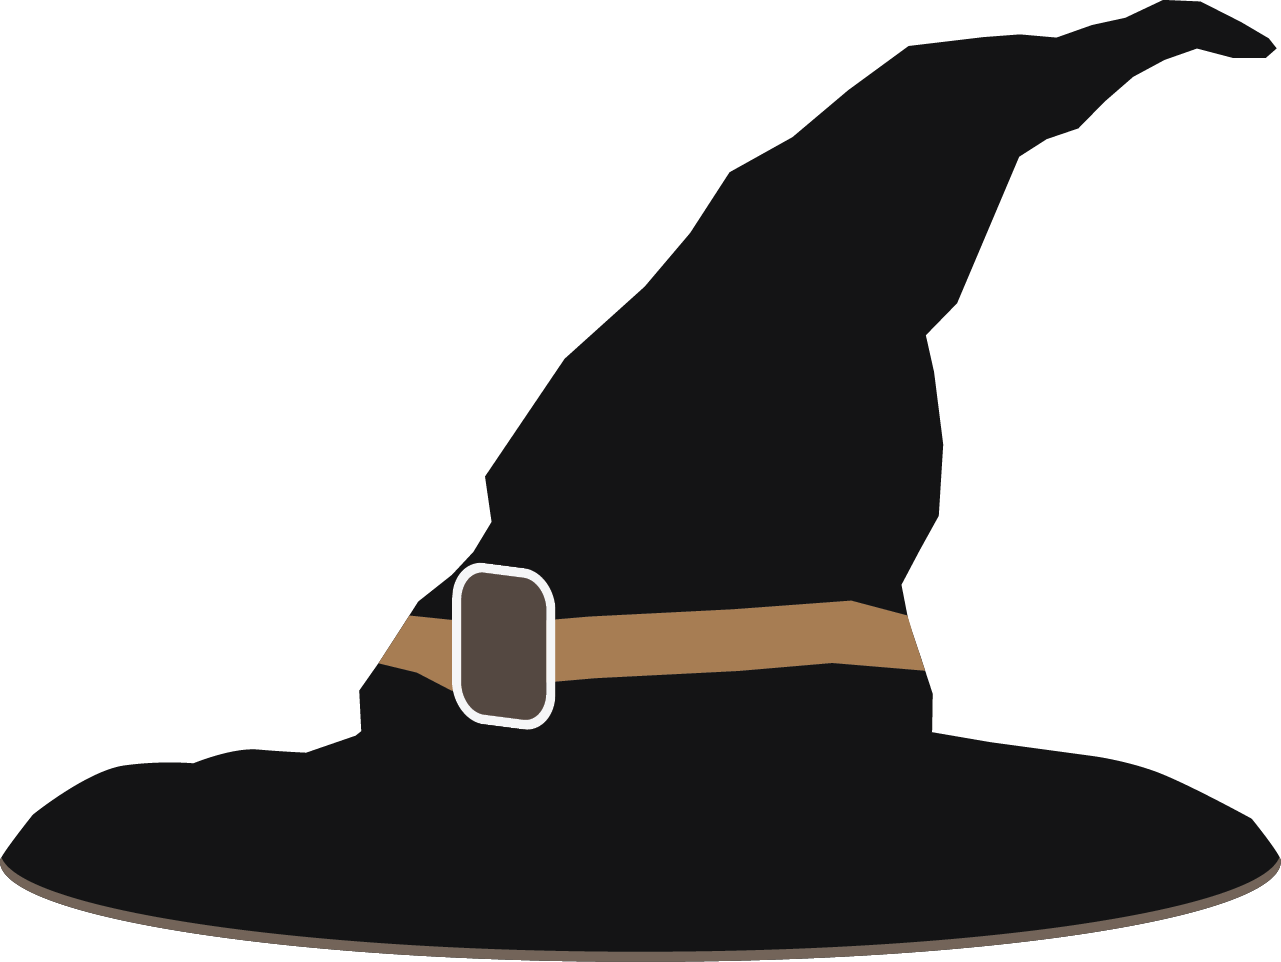 Witch hat illustration free clipart vector black and white library Free Witch\'s Hat Cliparts, Download Free Clip Art, Free Clip ... vector black and white library